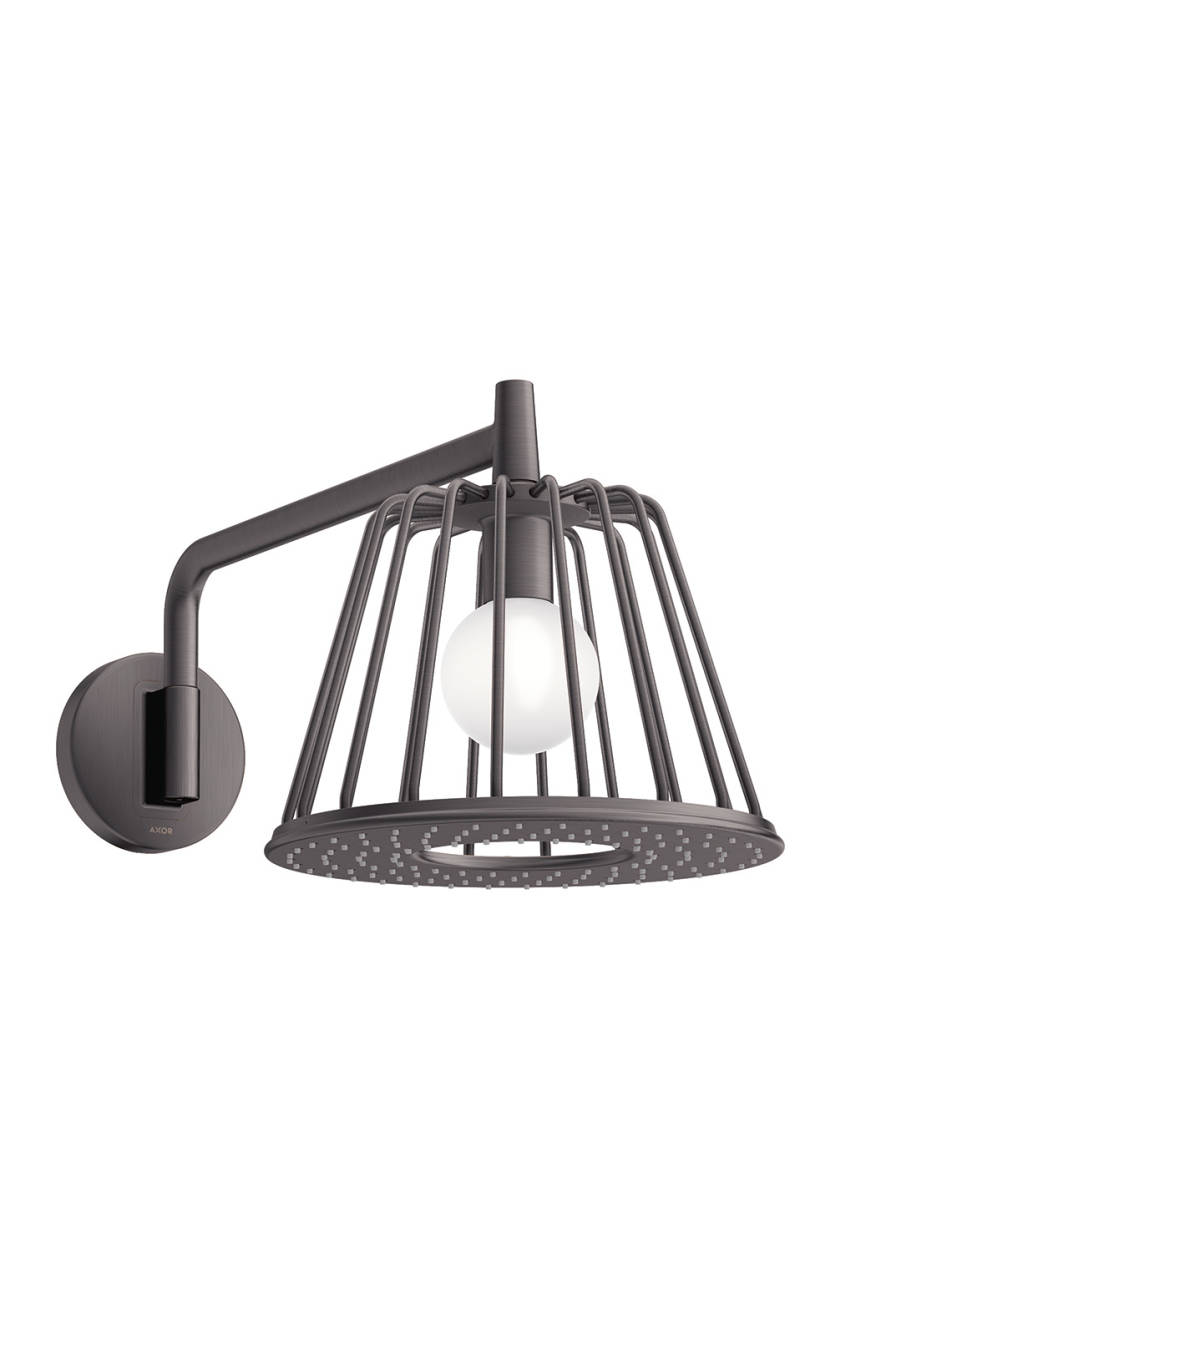 LampShower 275 1jet with shower arm, Brushed Black Chrome, 26031340